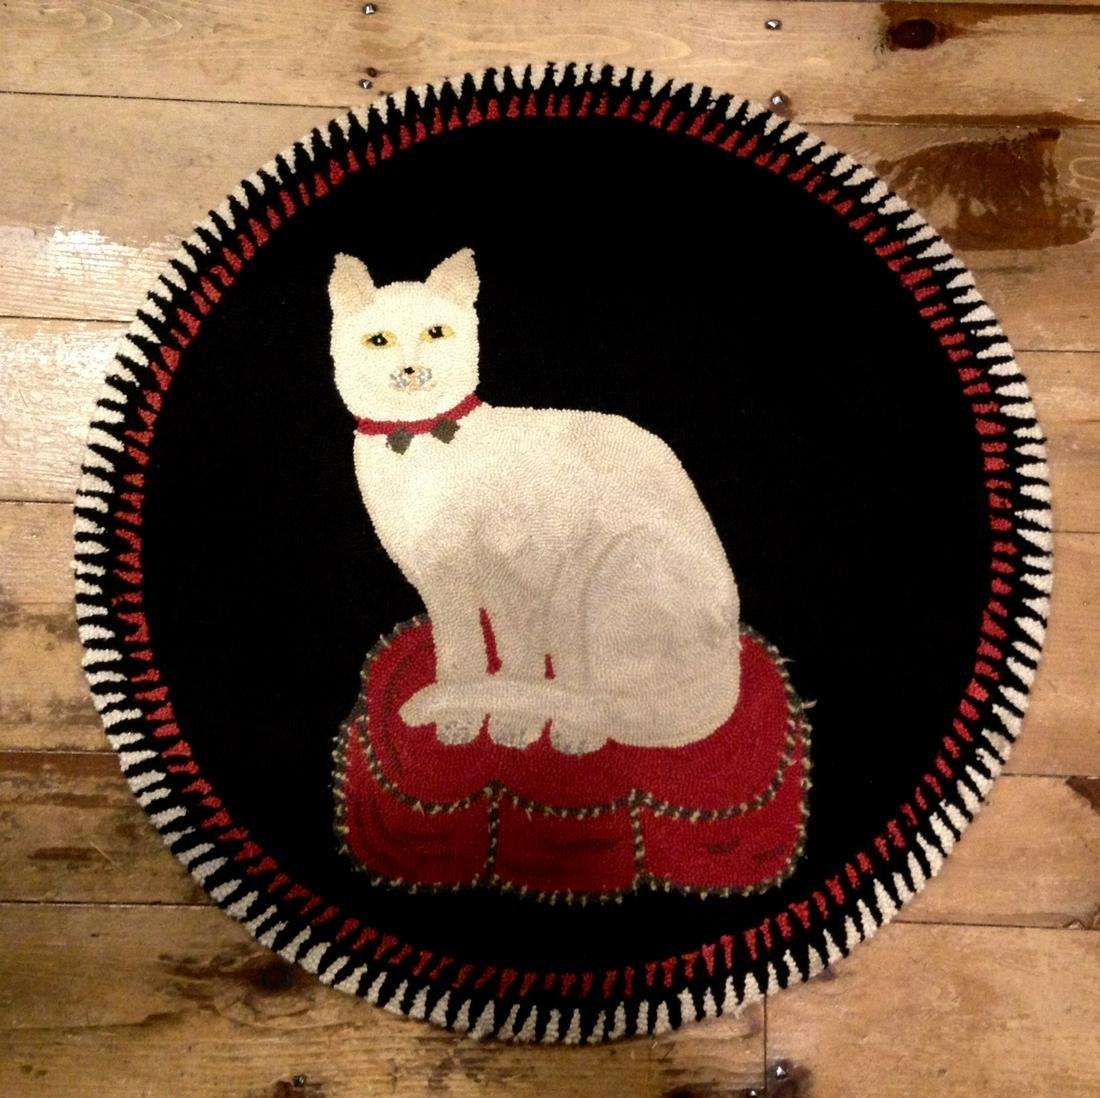 Mid 20thc Folk Art Cat Yarn Hooked Rug With Great